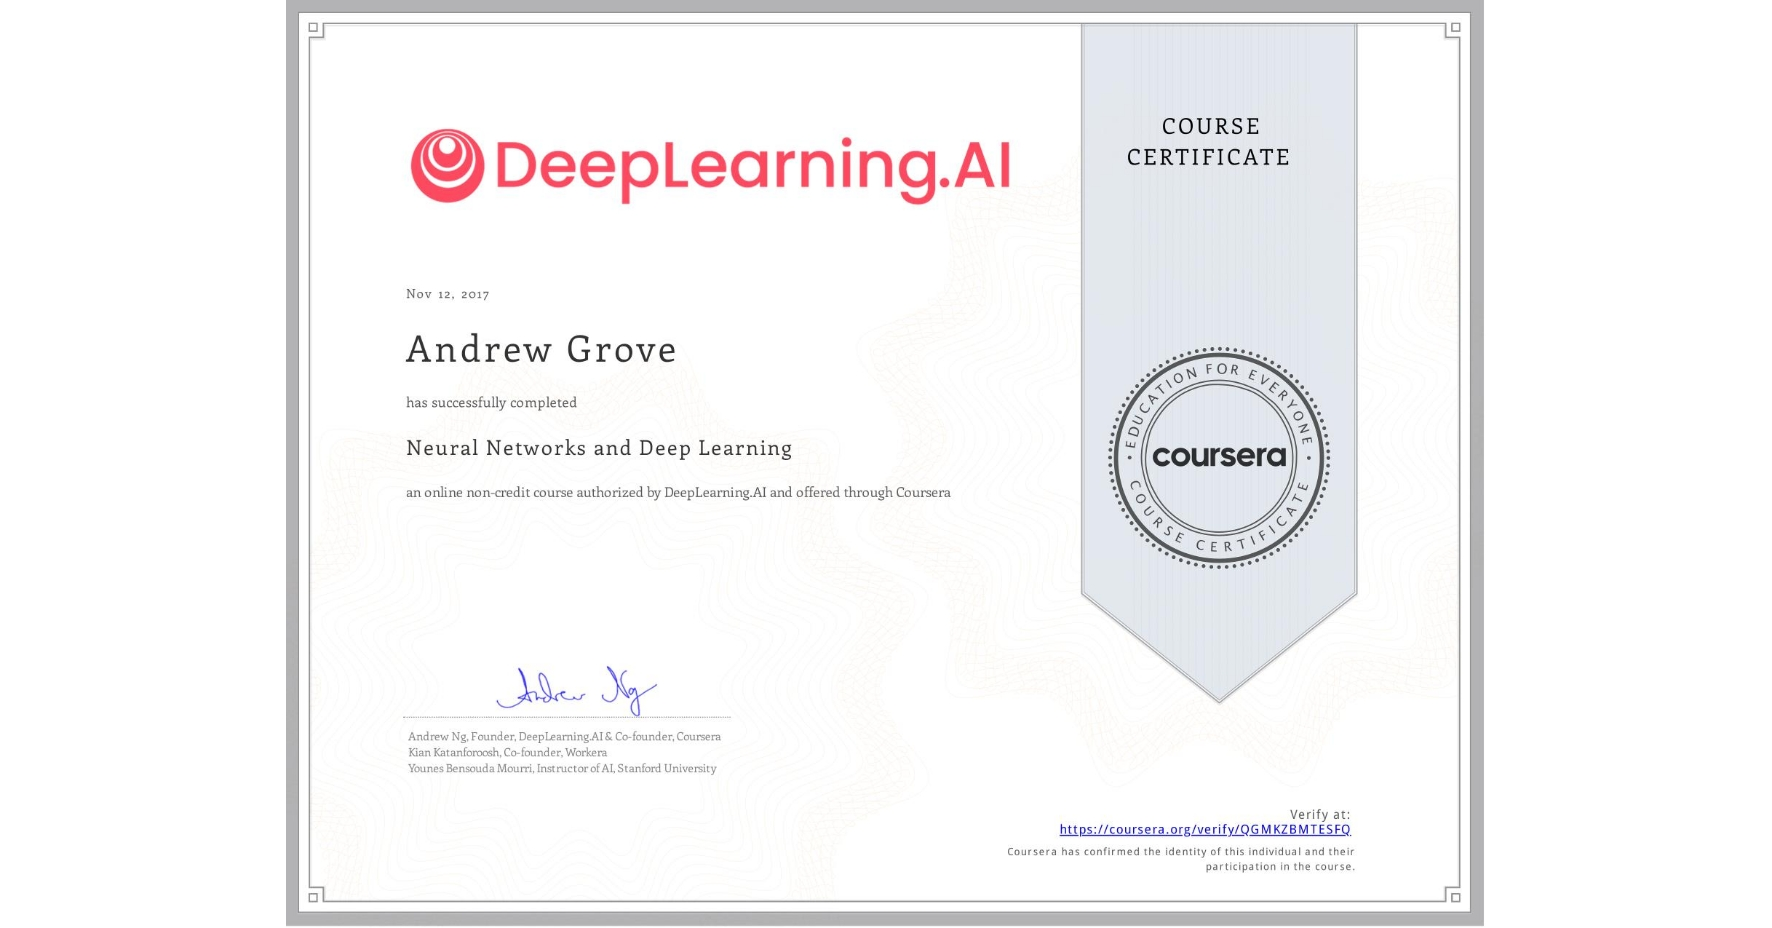 View certificate for Andrew Grove, Neural Networks and Deep Learning, an online non-credit course authorized by DeepLearning.AI and offered through Coursera